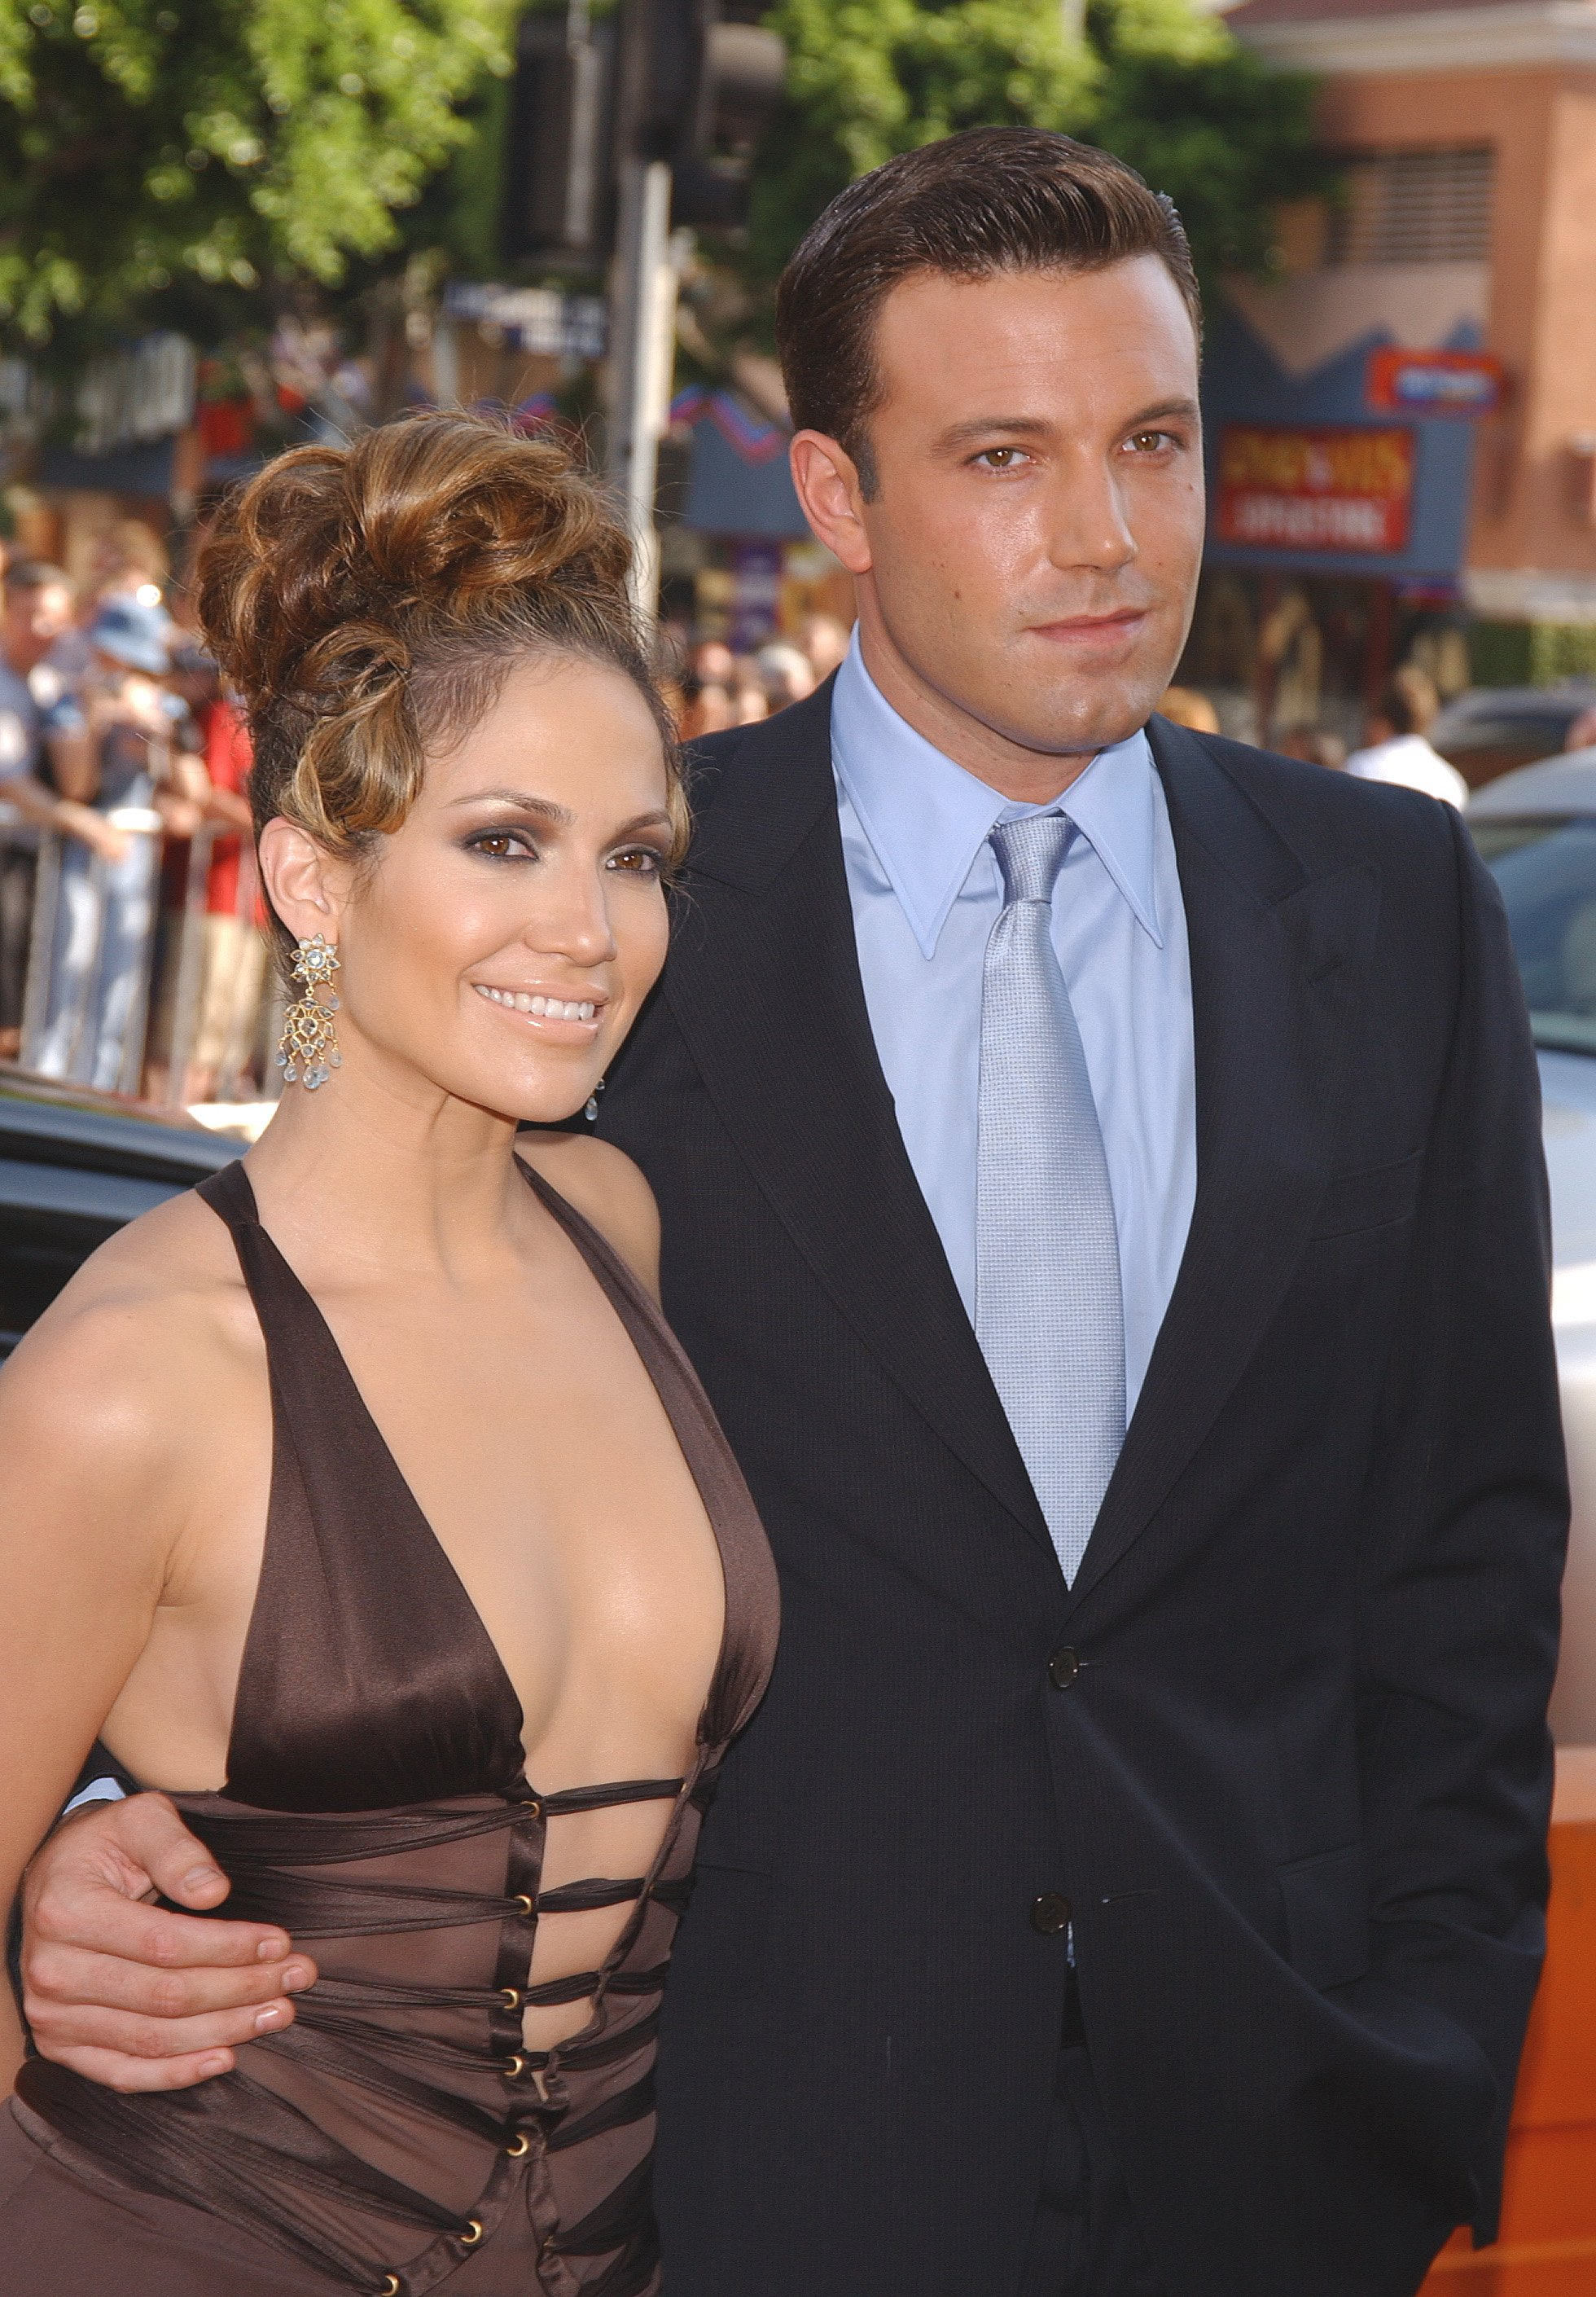 """Ben Affleck and Jennifer Lopez at the premiere of """"Gigli"""" in 2003 